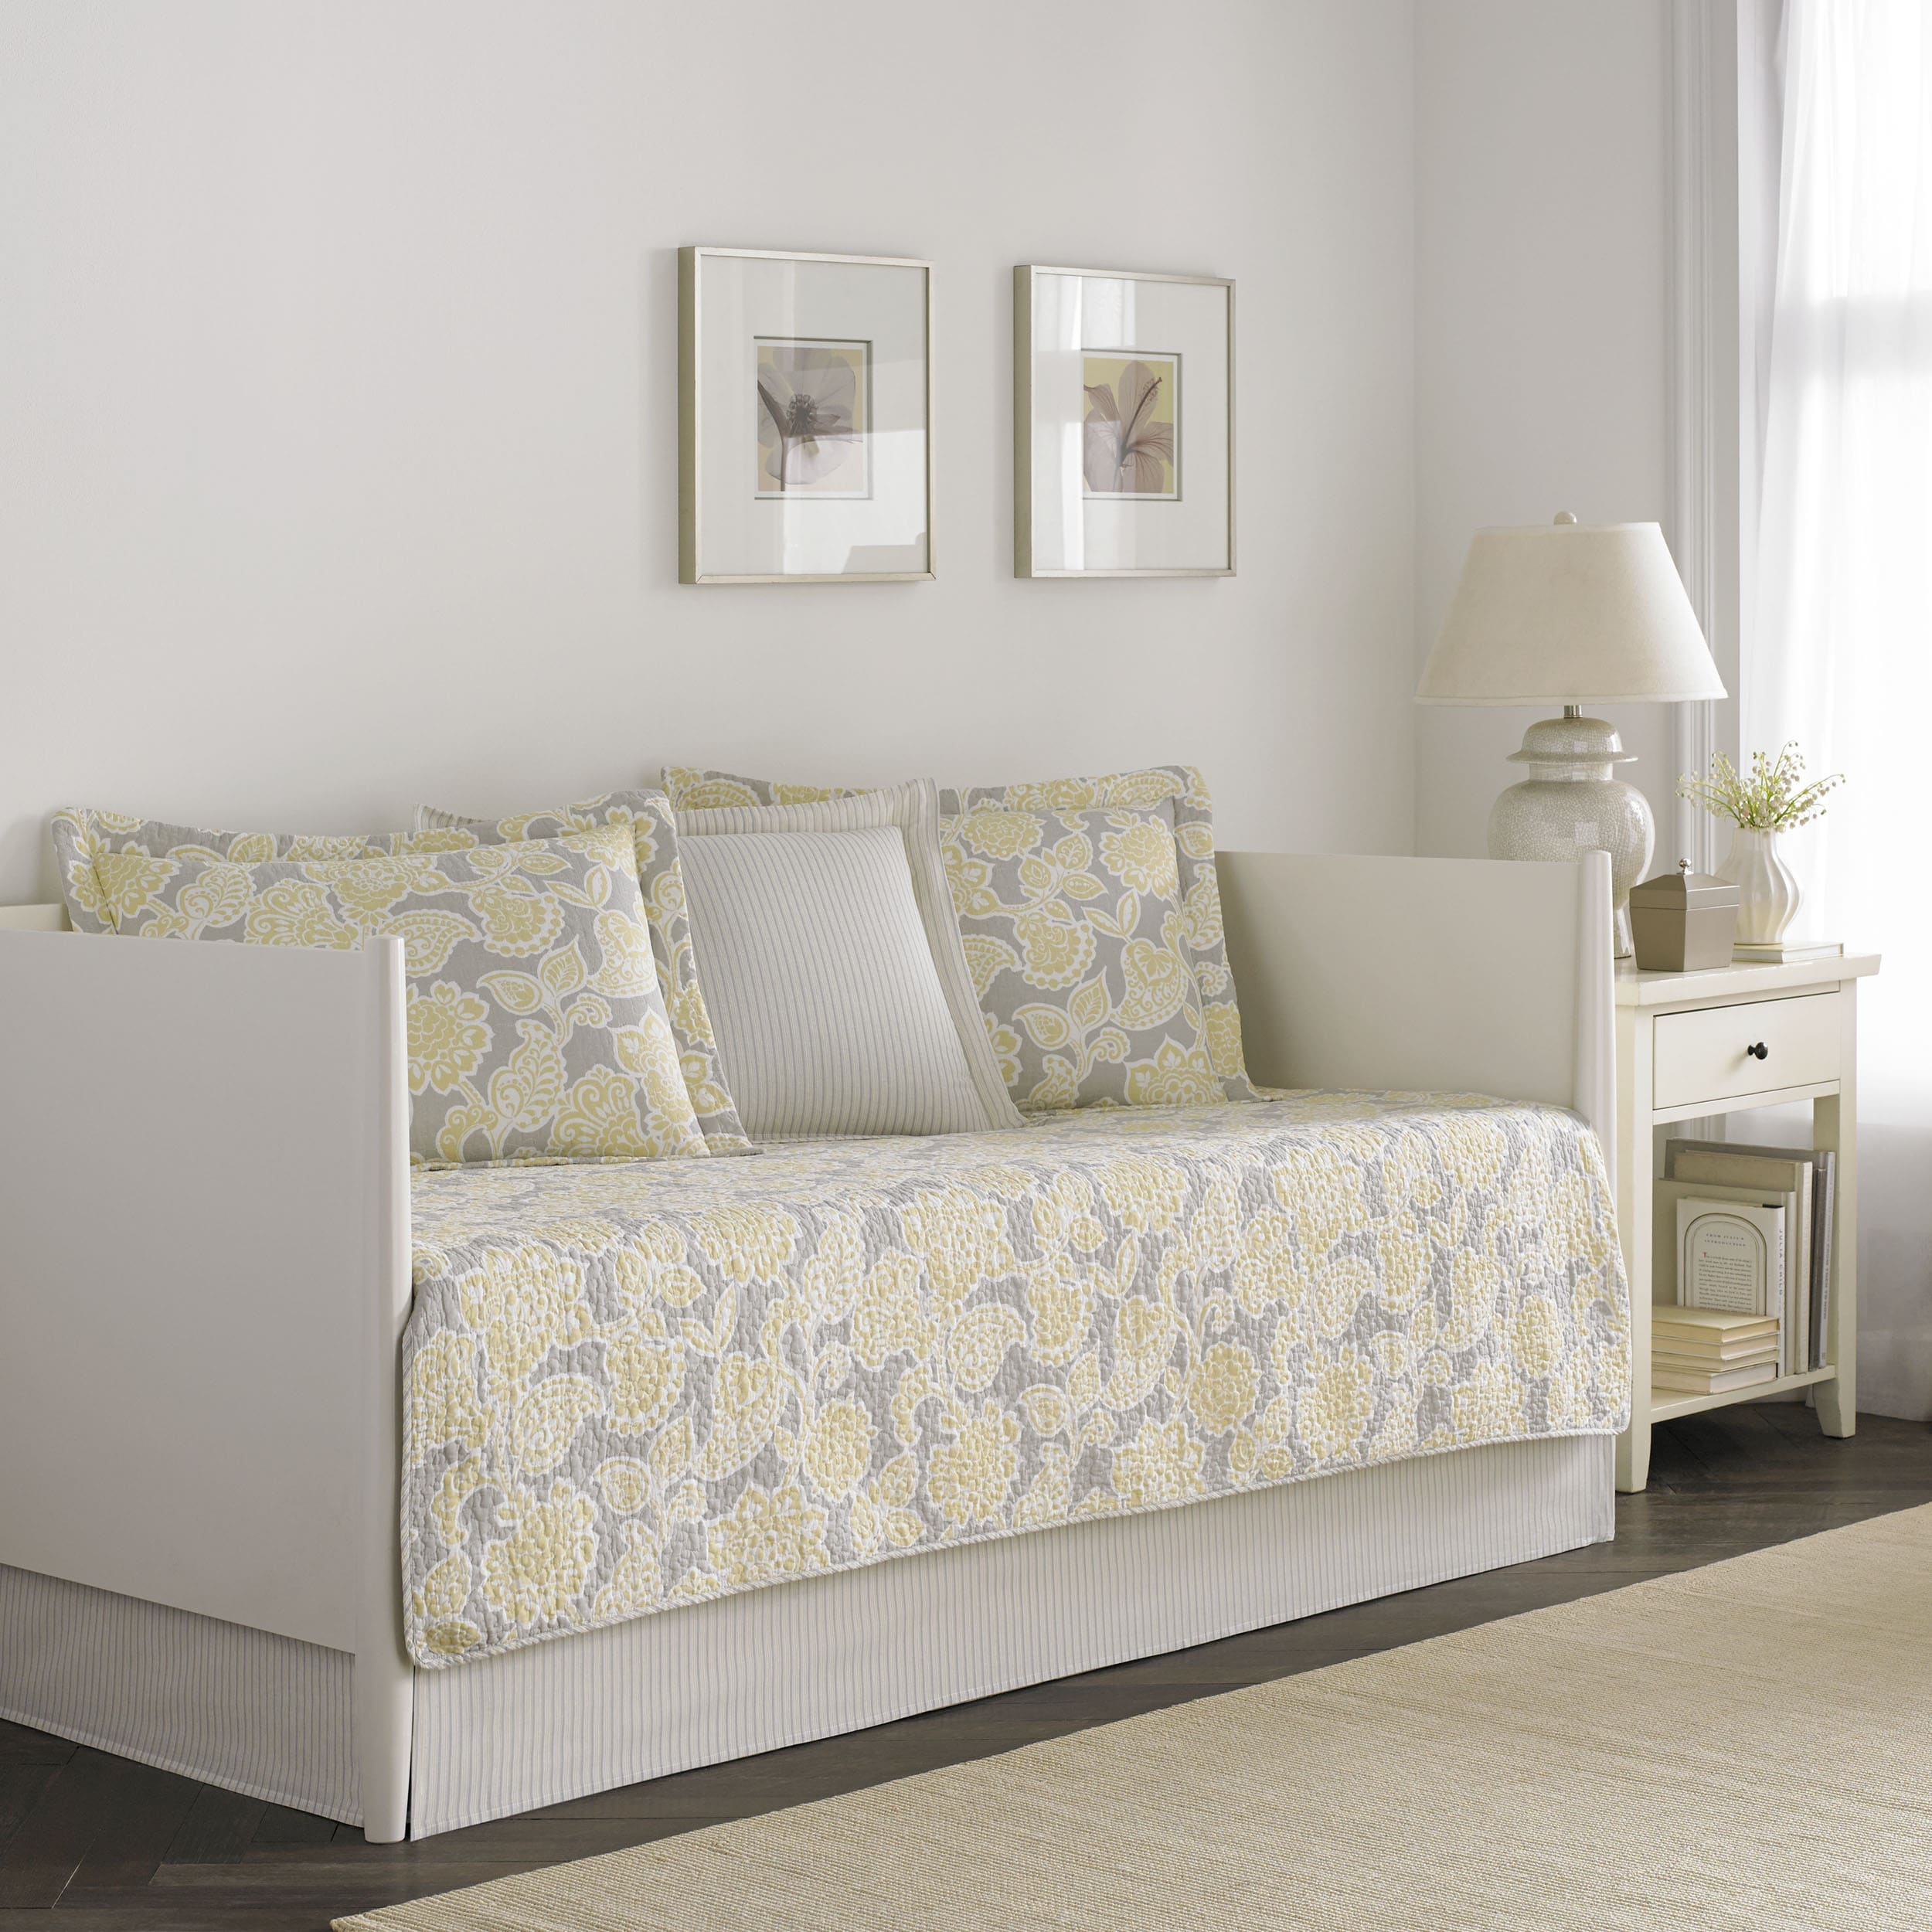 Joy 5-piece Quilted Daybed Cover Set Yellow Floral Designer Victorian Cotton - Diamond Home USA